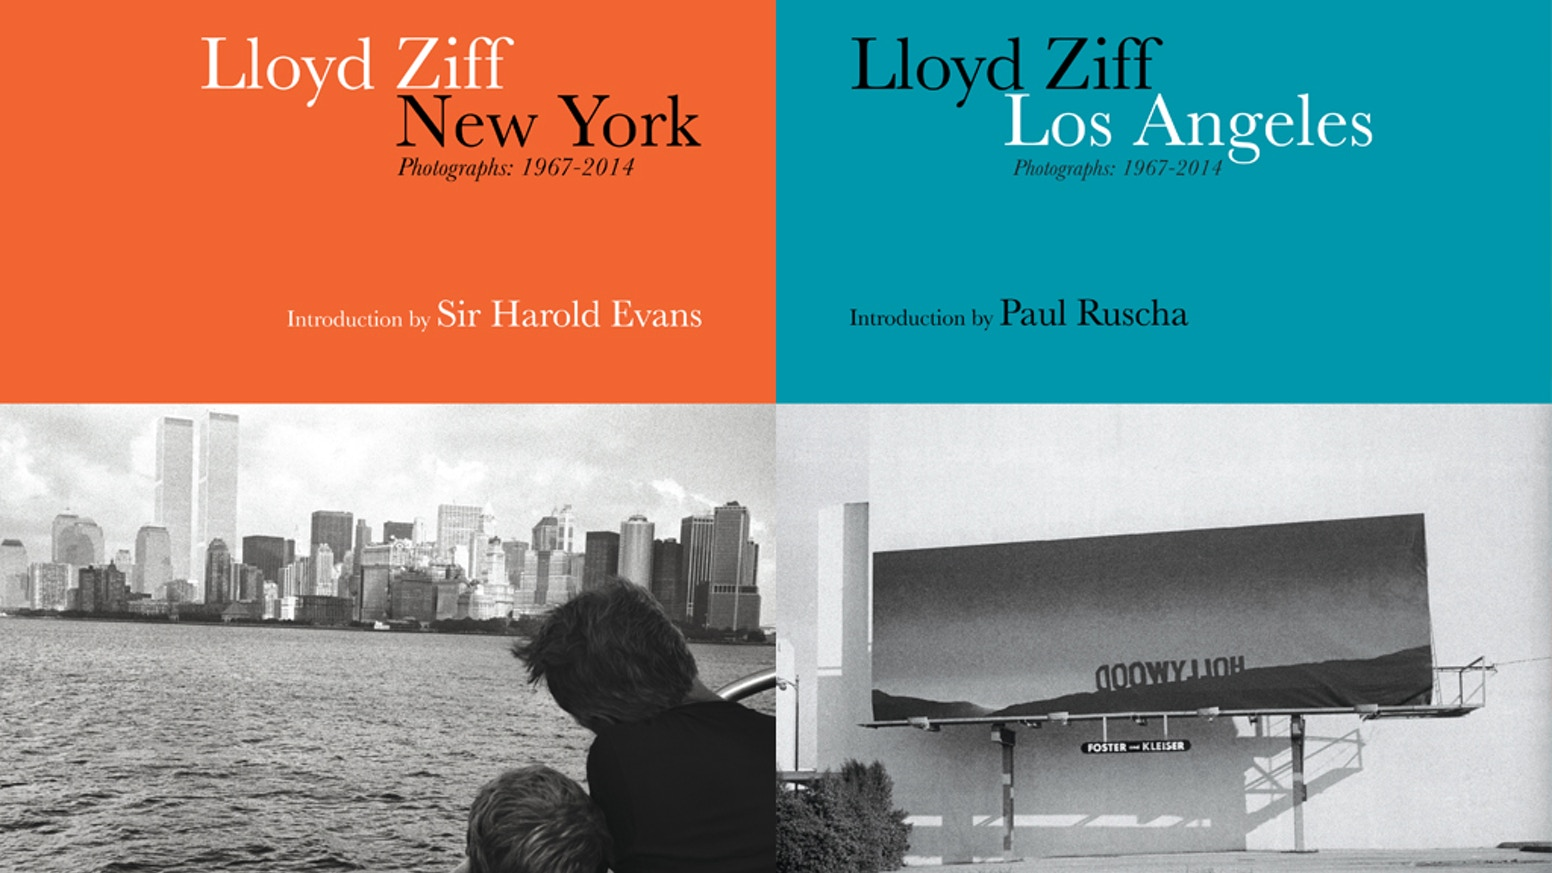 New York / Los Angeles: 2 Volume Photo Book Set By Lloyd